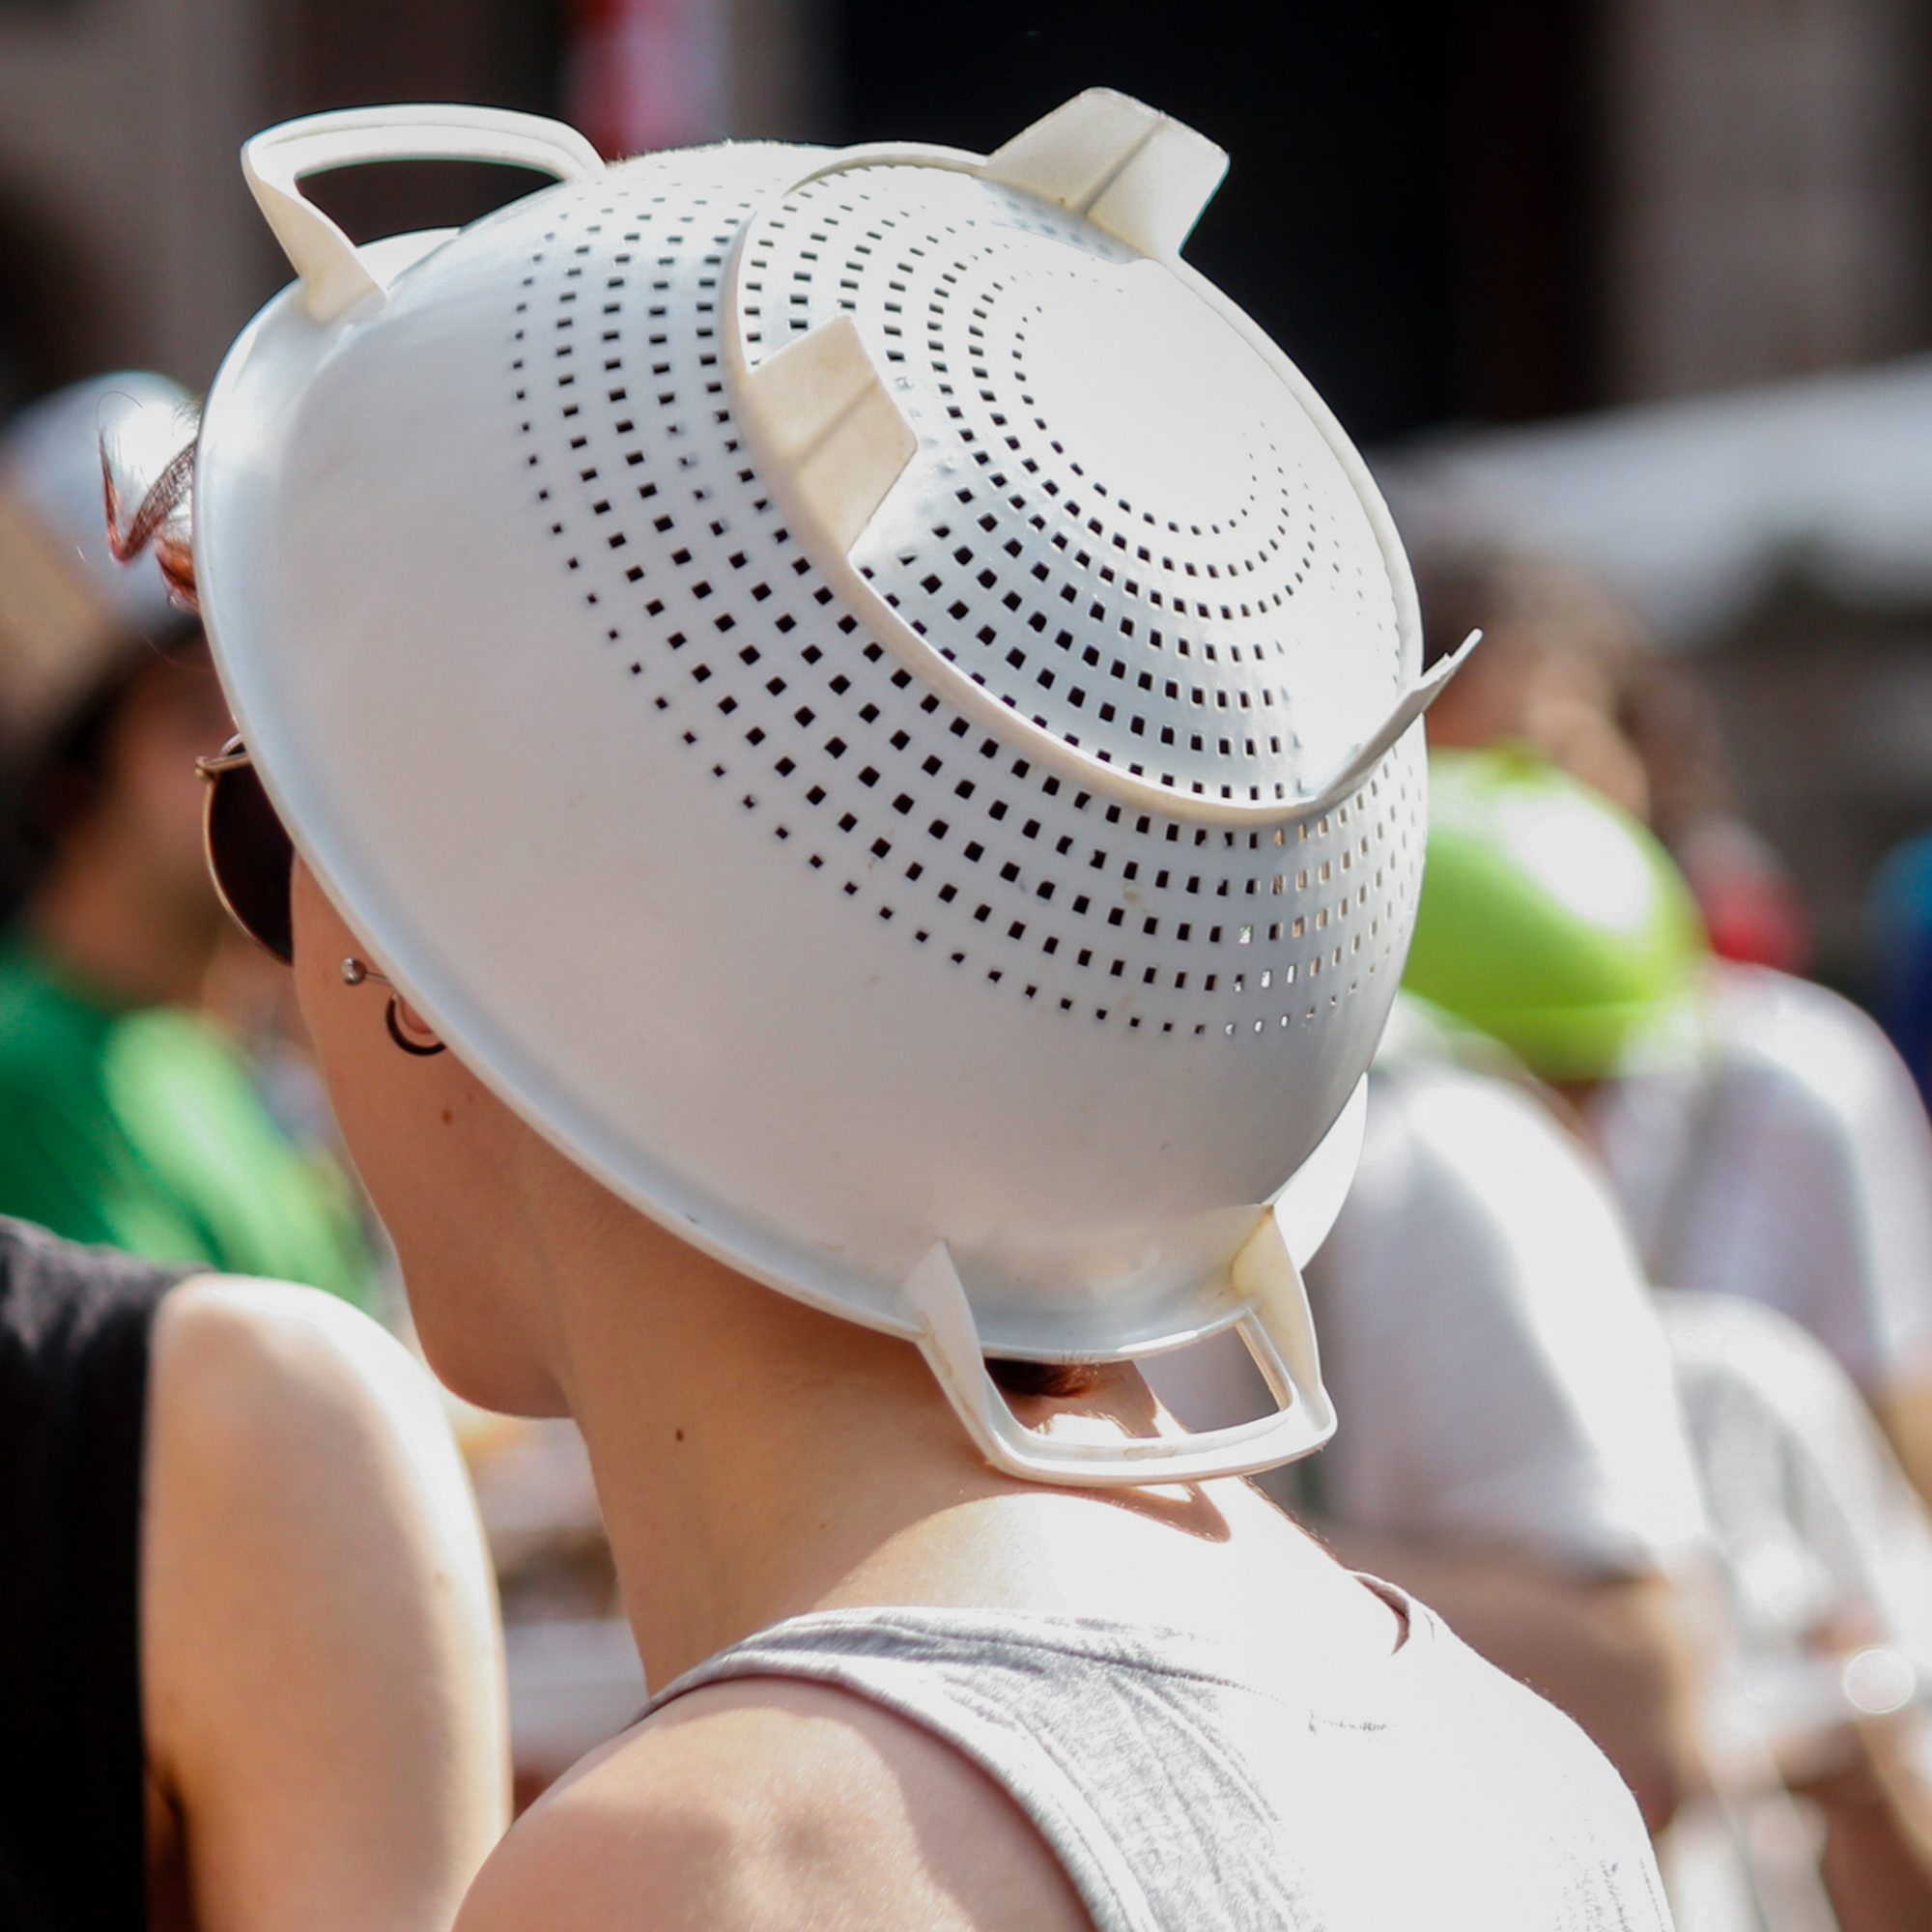 Massachusetts Respects Your Right to Wear a Colander On Your Head